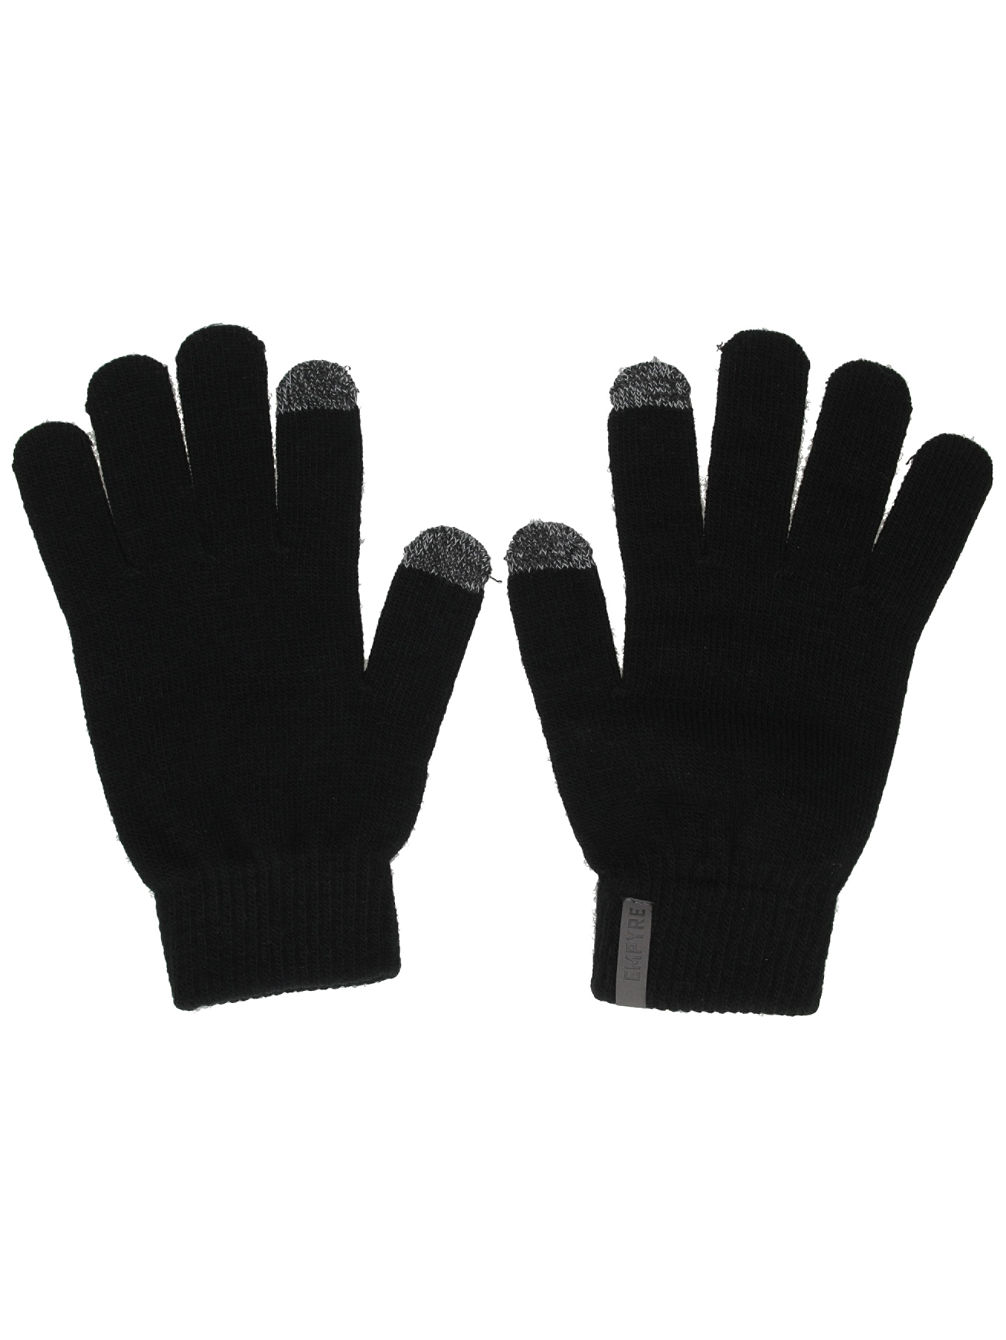 Techytachy Gloves